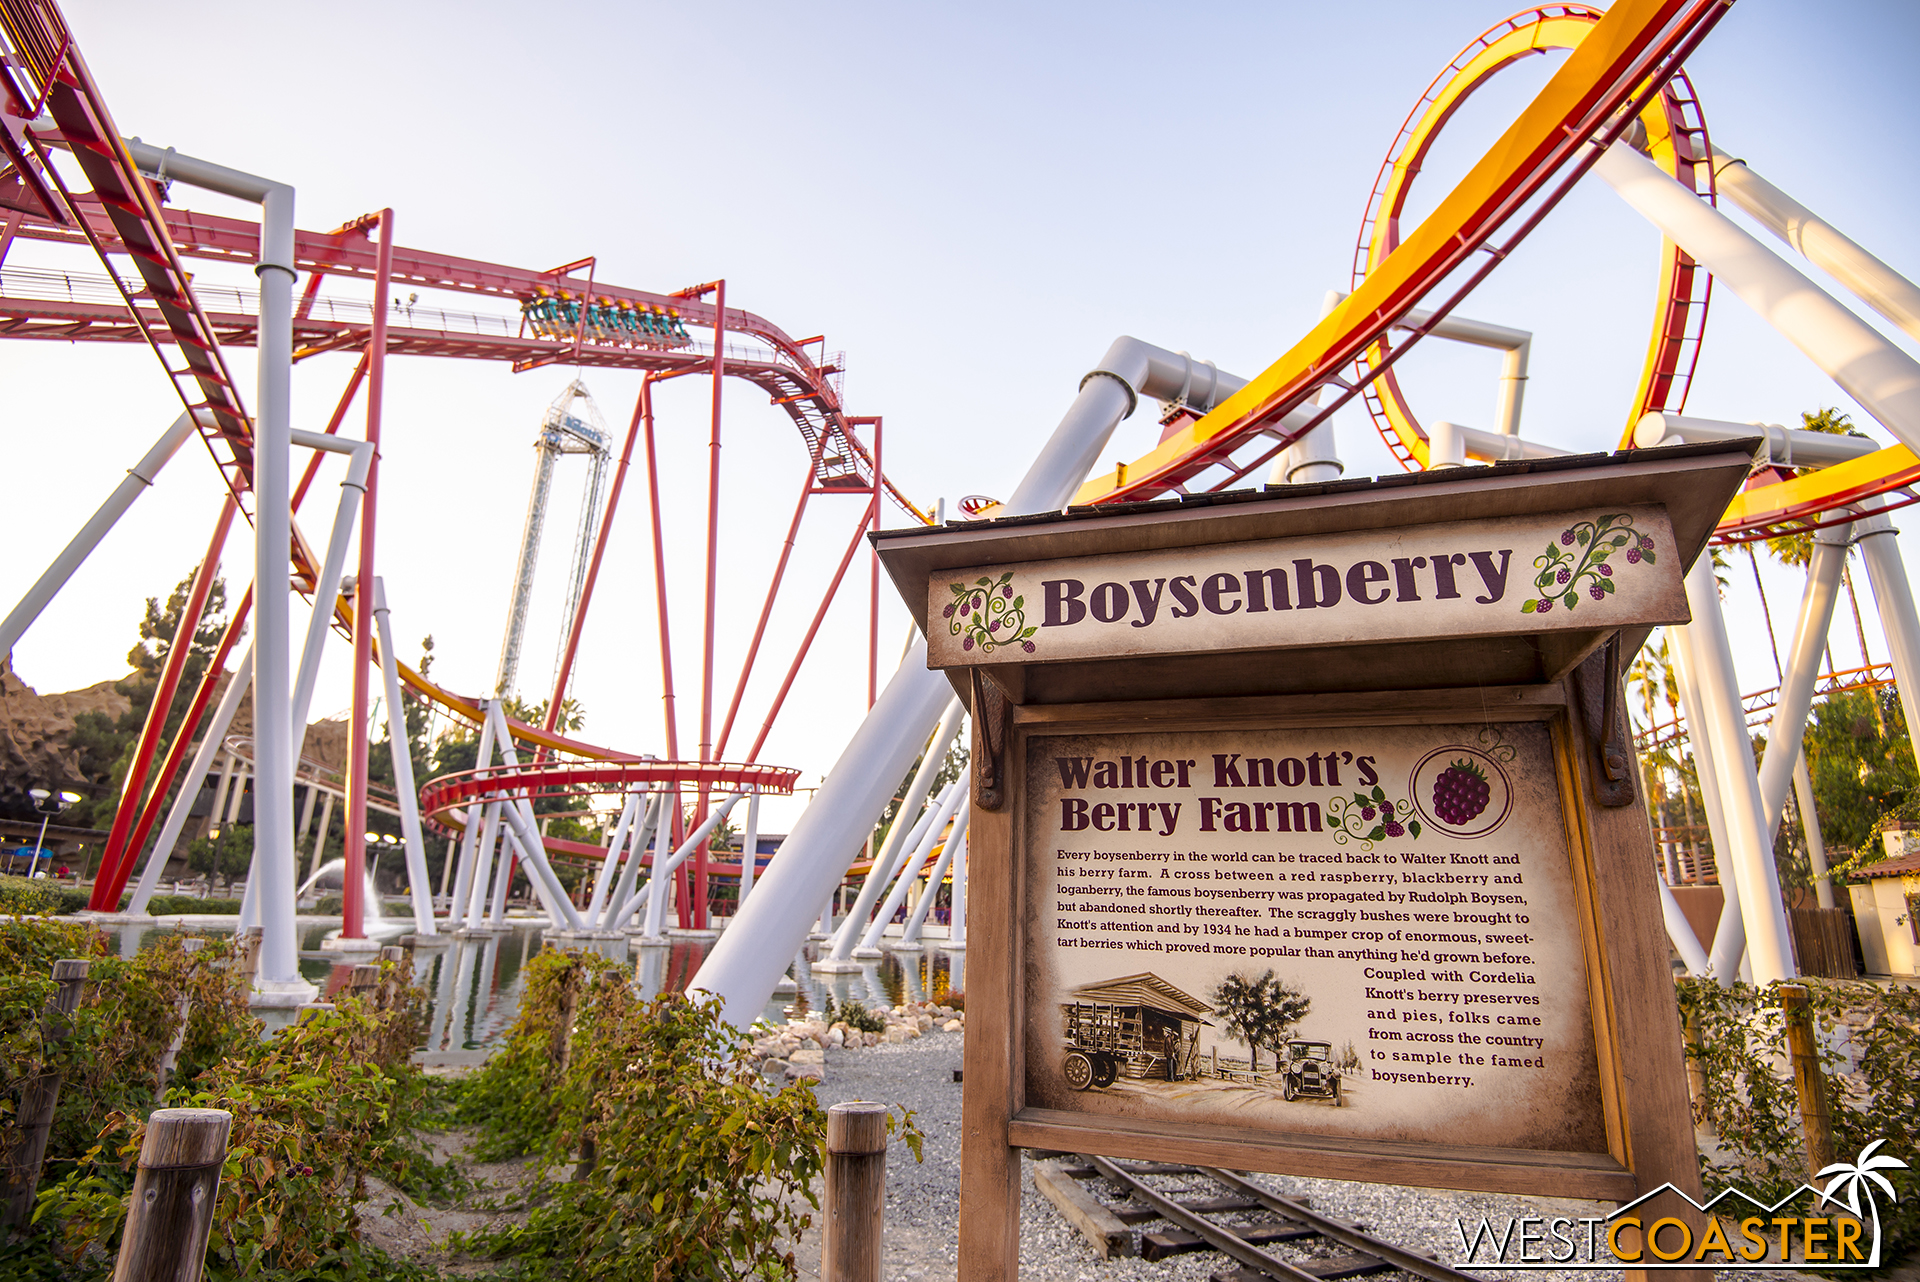 Over at Silver Bullet, they've planted some boysenberry vines.